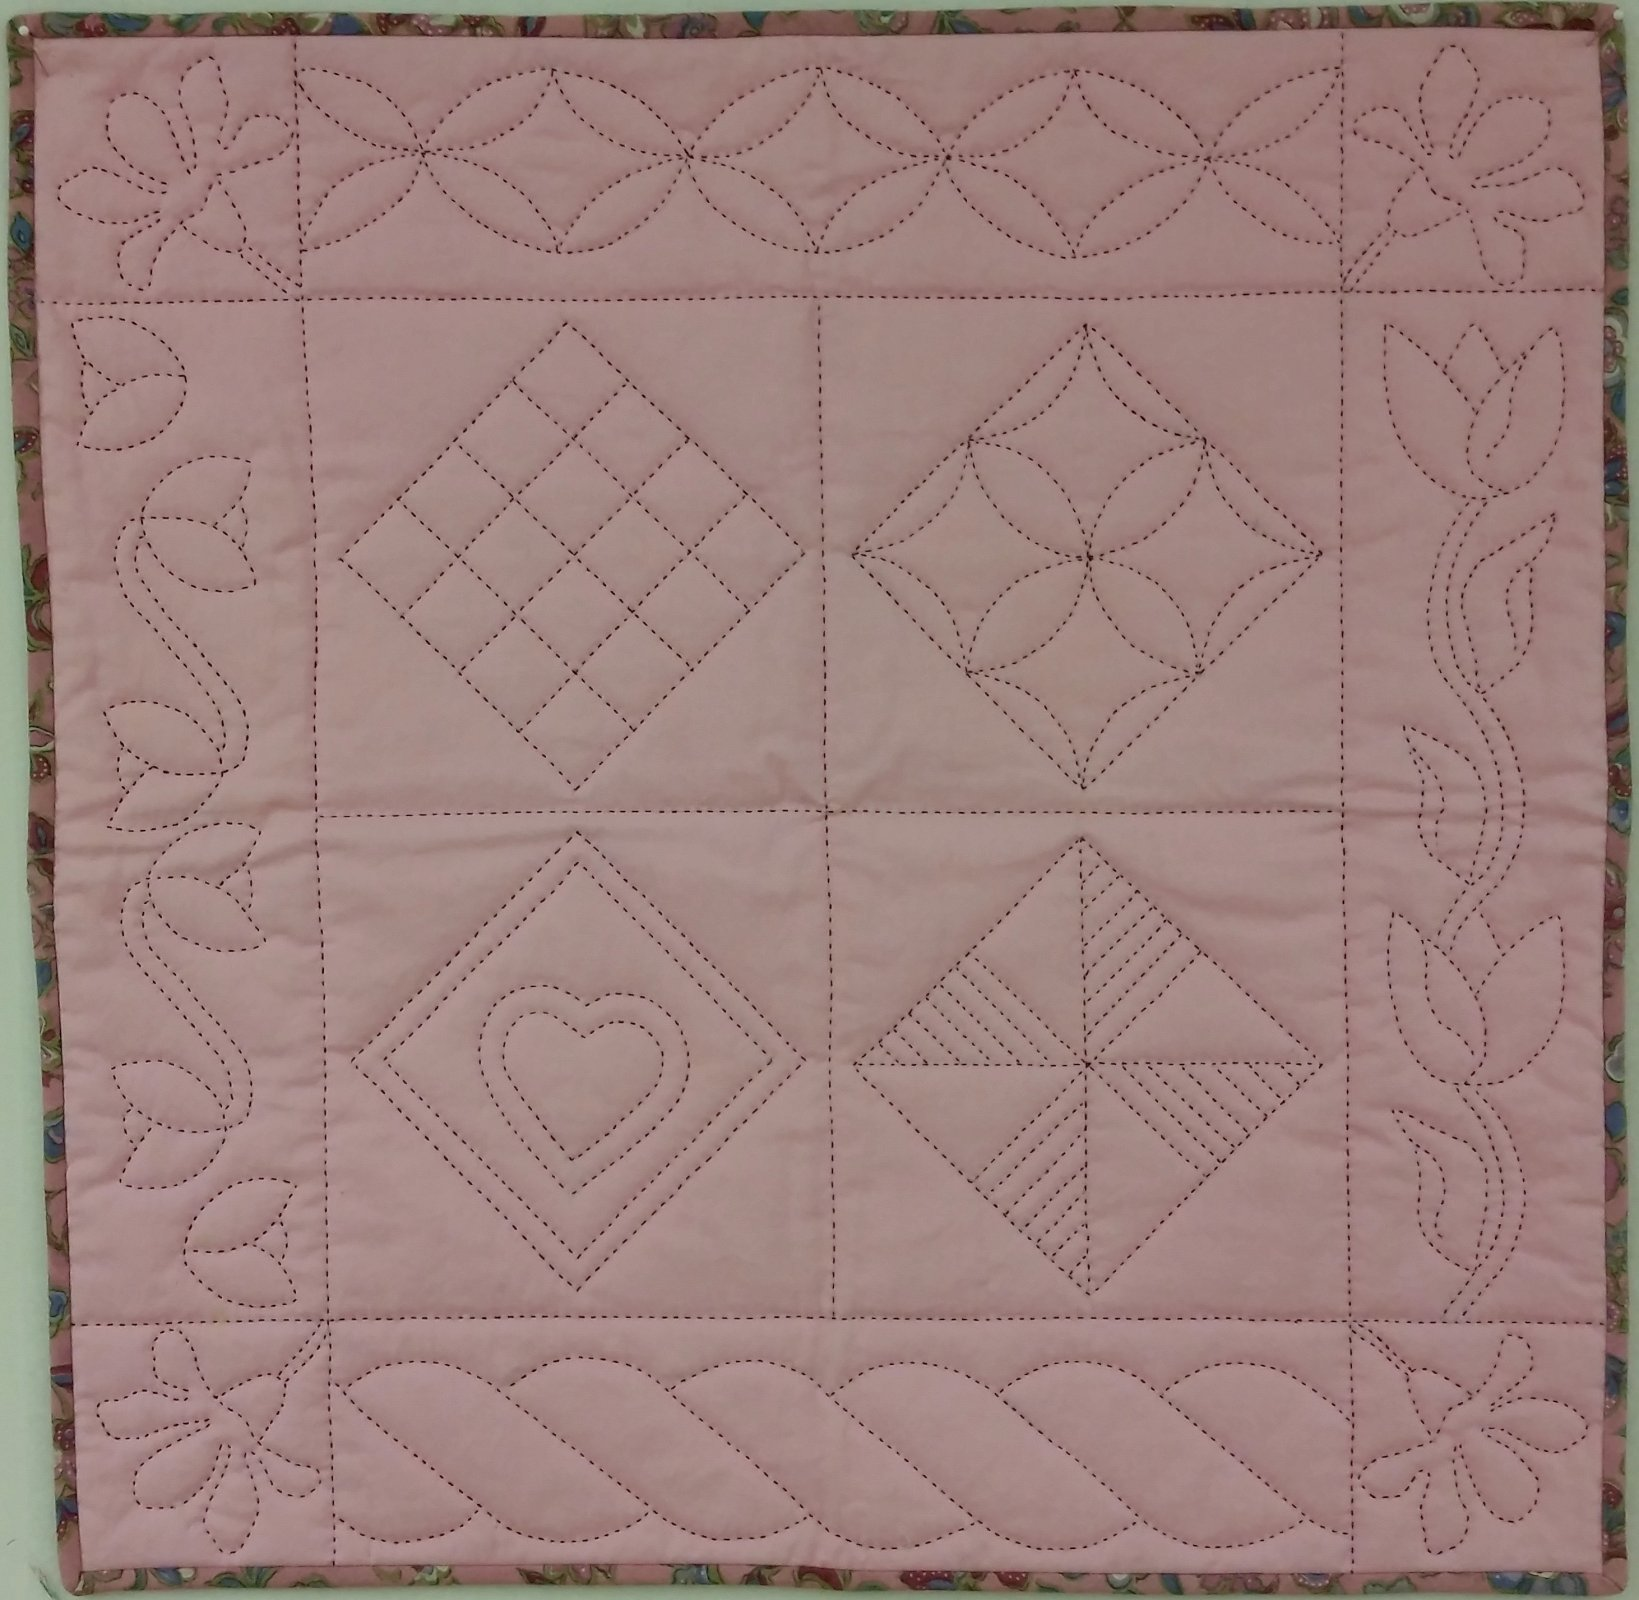 Hand Quilting without a Hoop Class with Pat Brousil : hand quilting without a hoop - Adamdwight.com